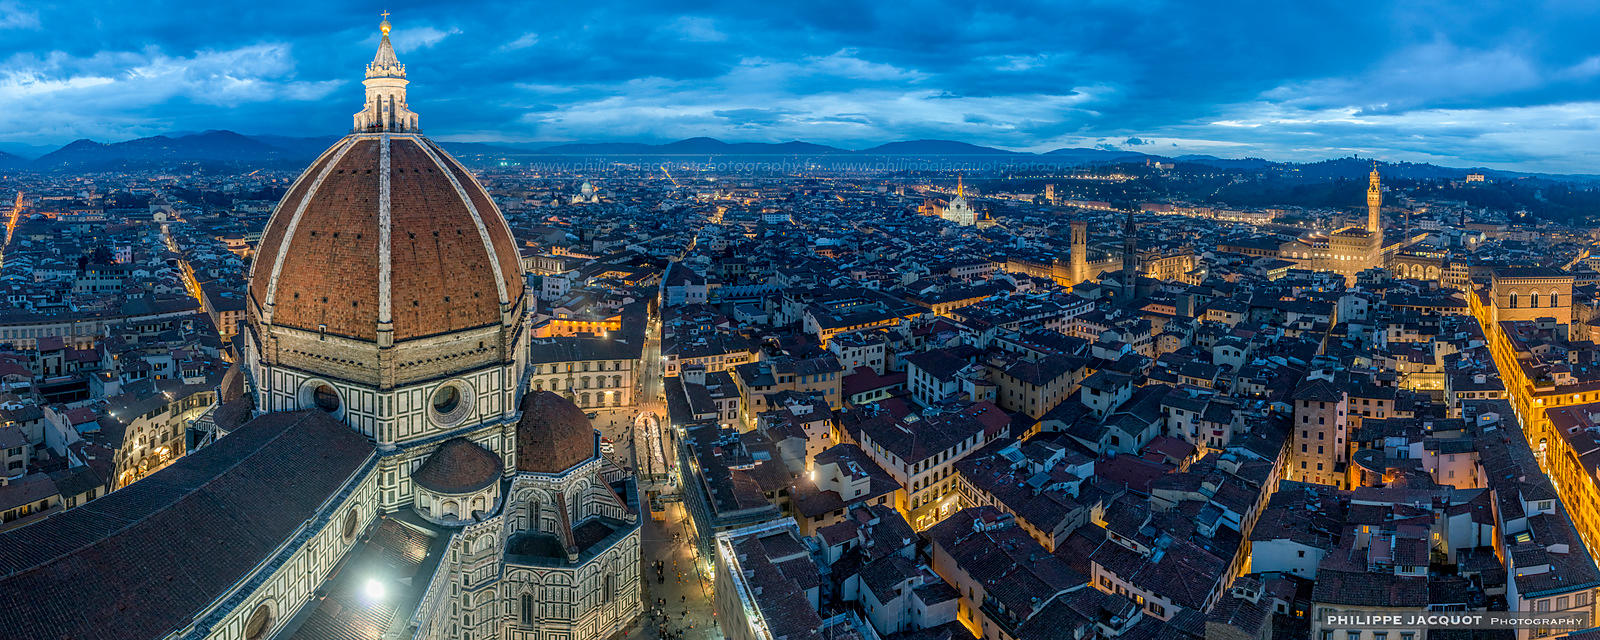 Duomo in Firenze - Italy